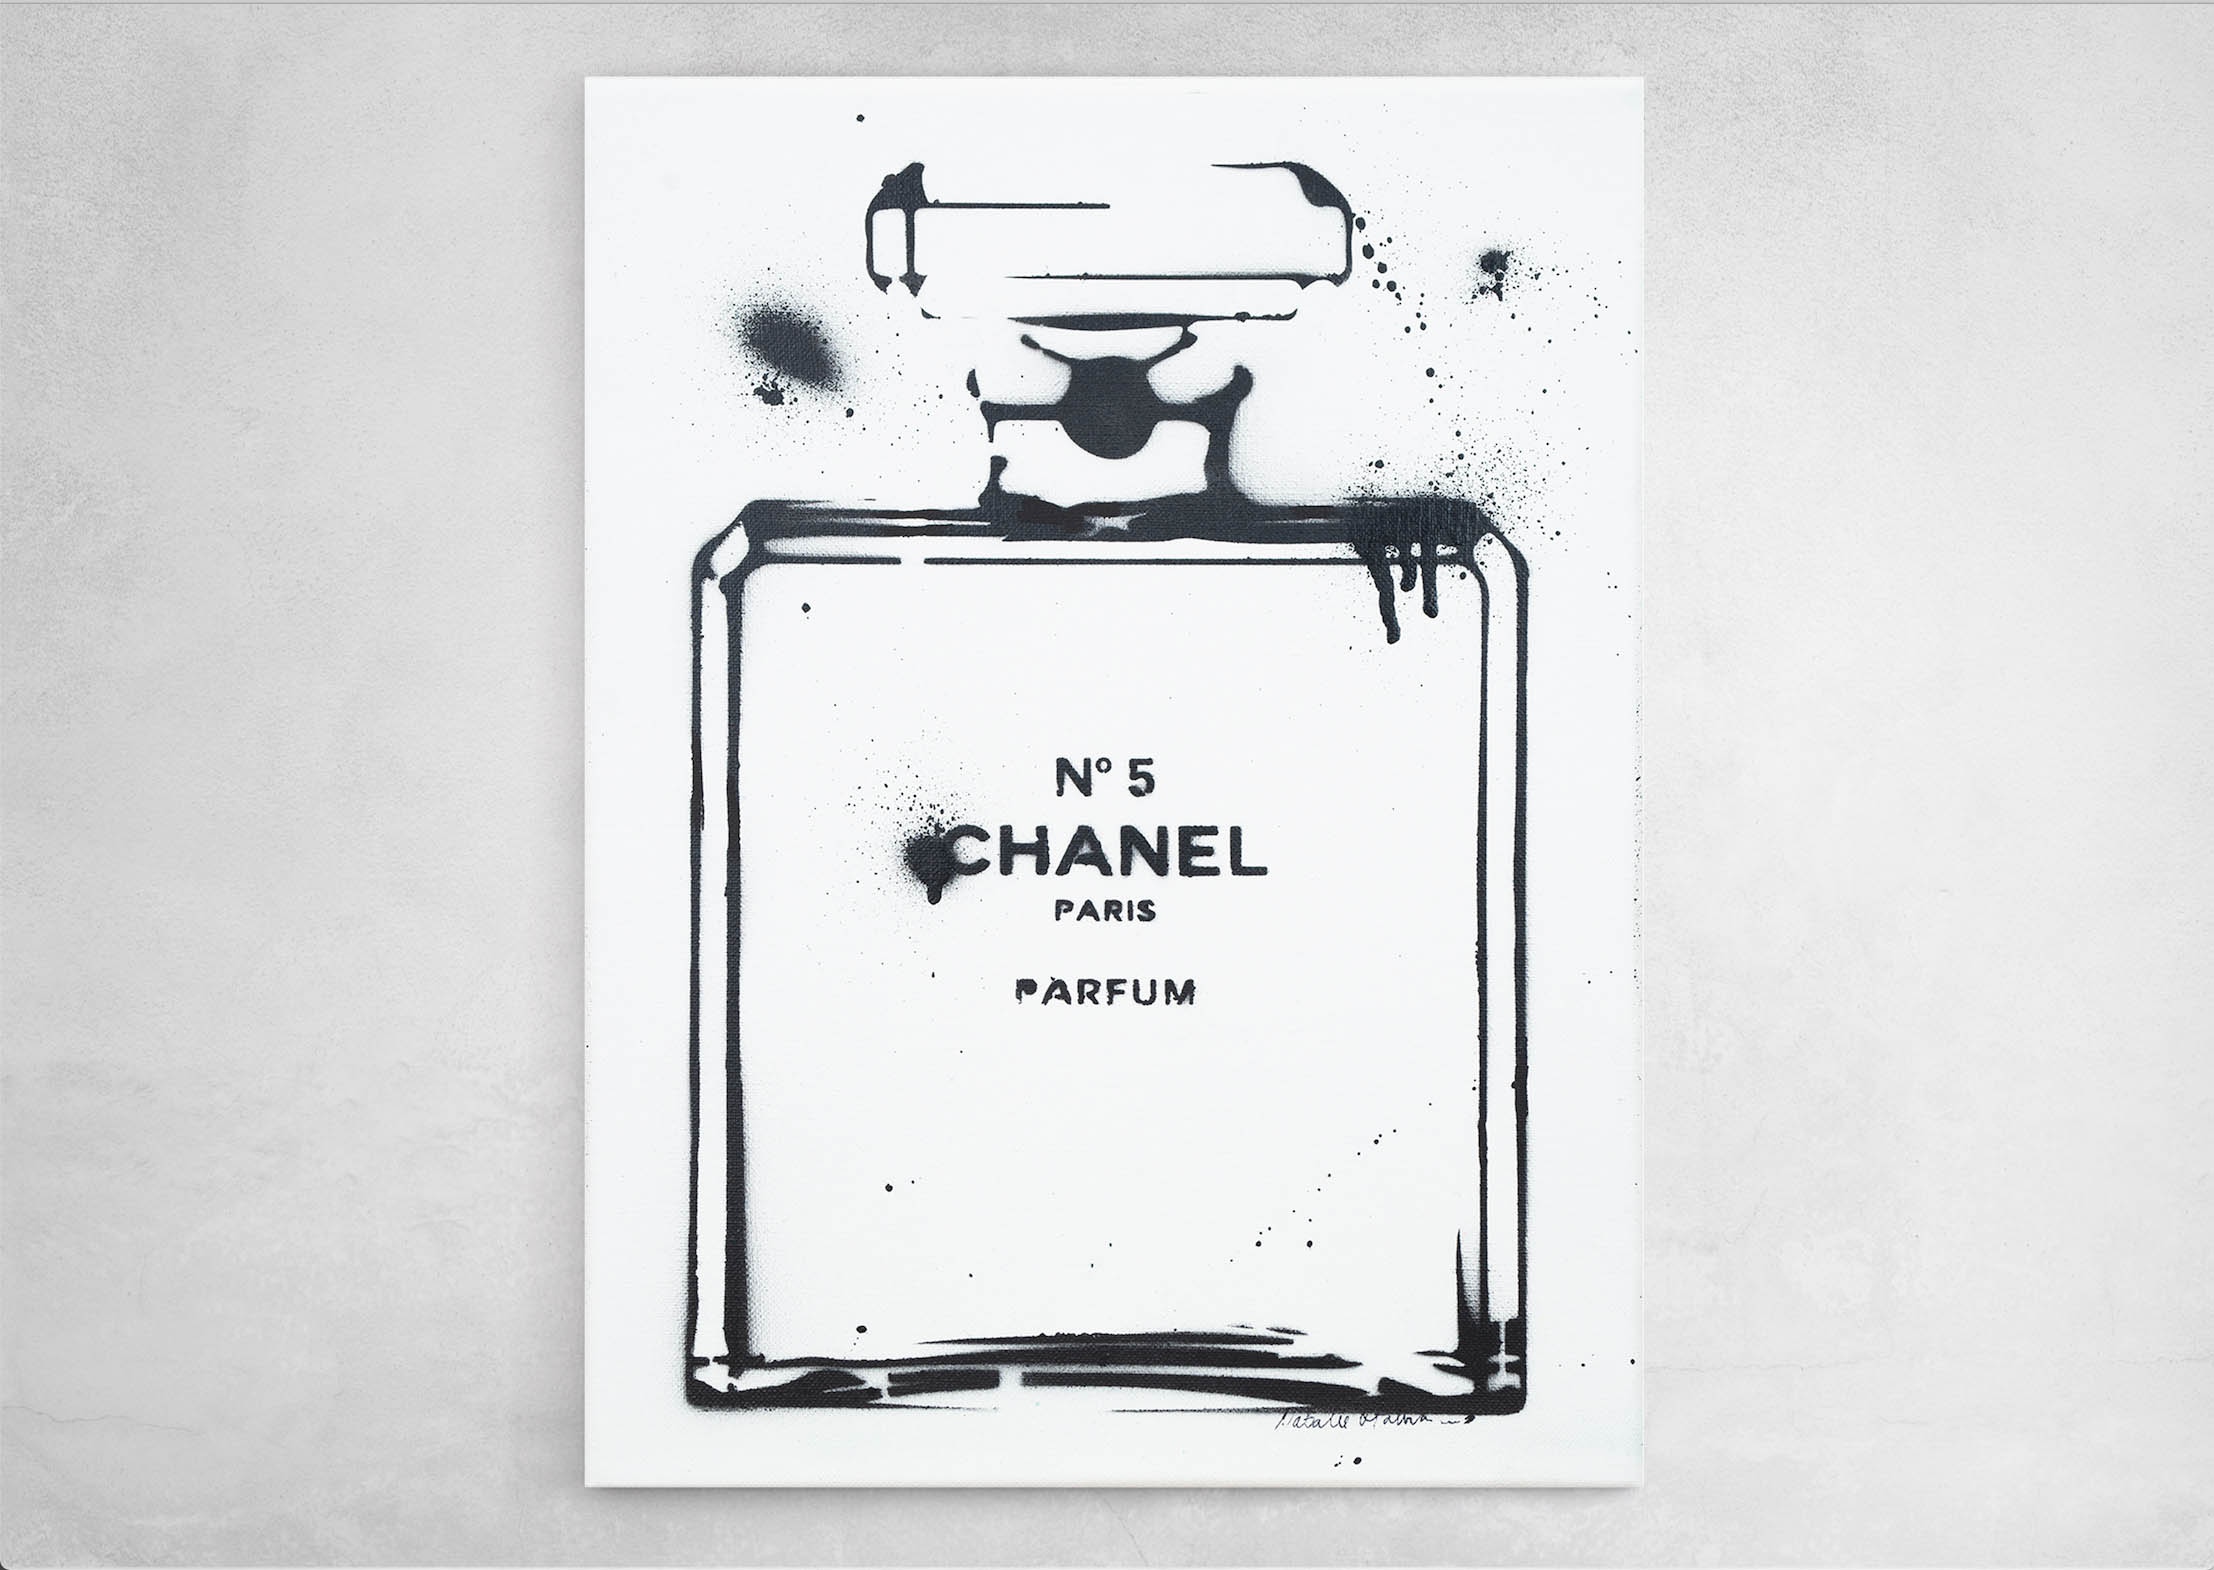 ART-PAINT-CHANEL-PERFUME-JUST-BLACK-CANVAS-ON-WALL